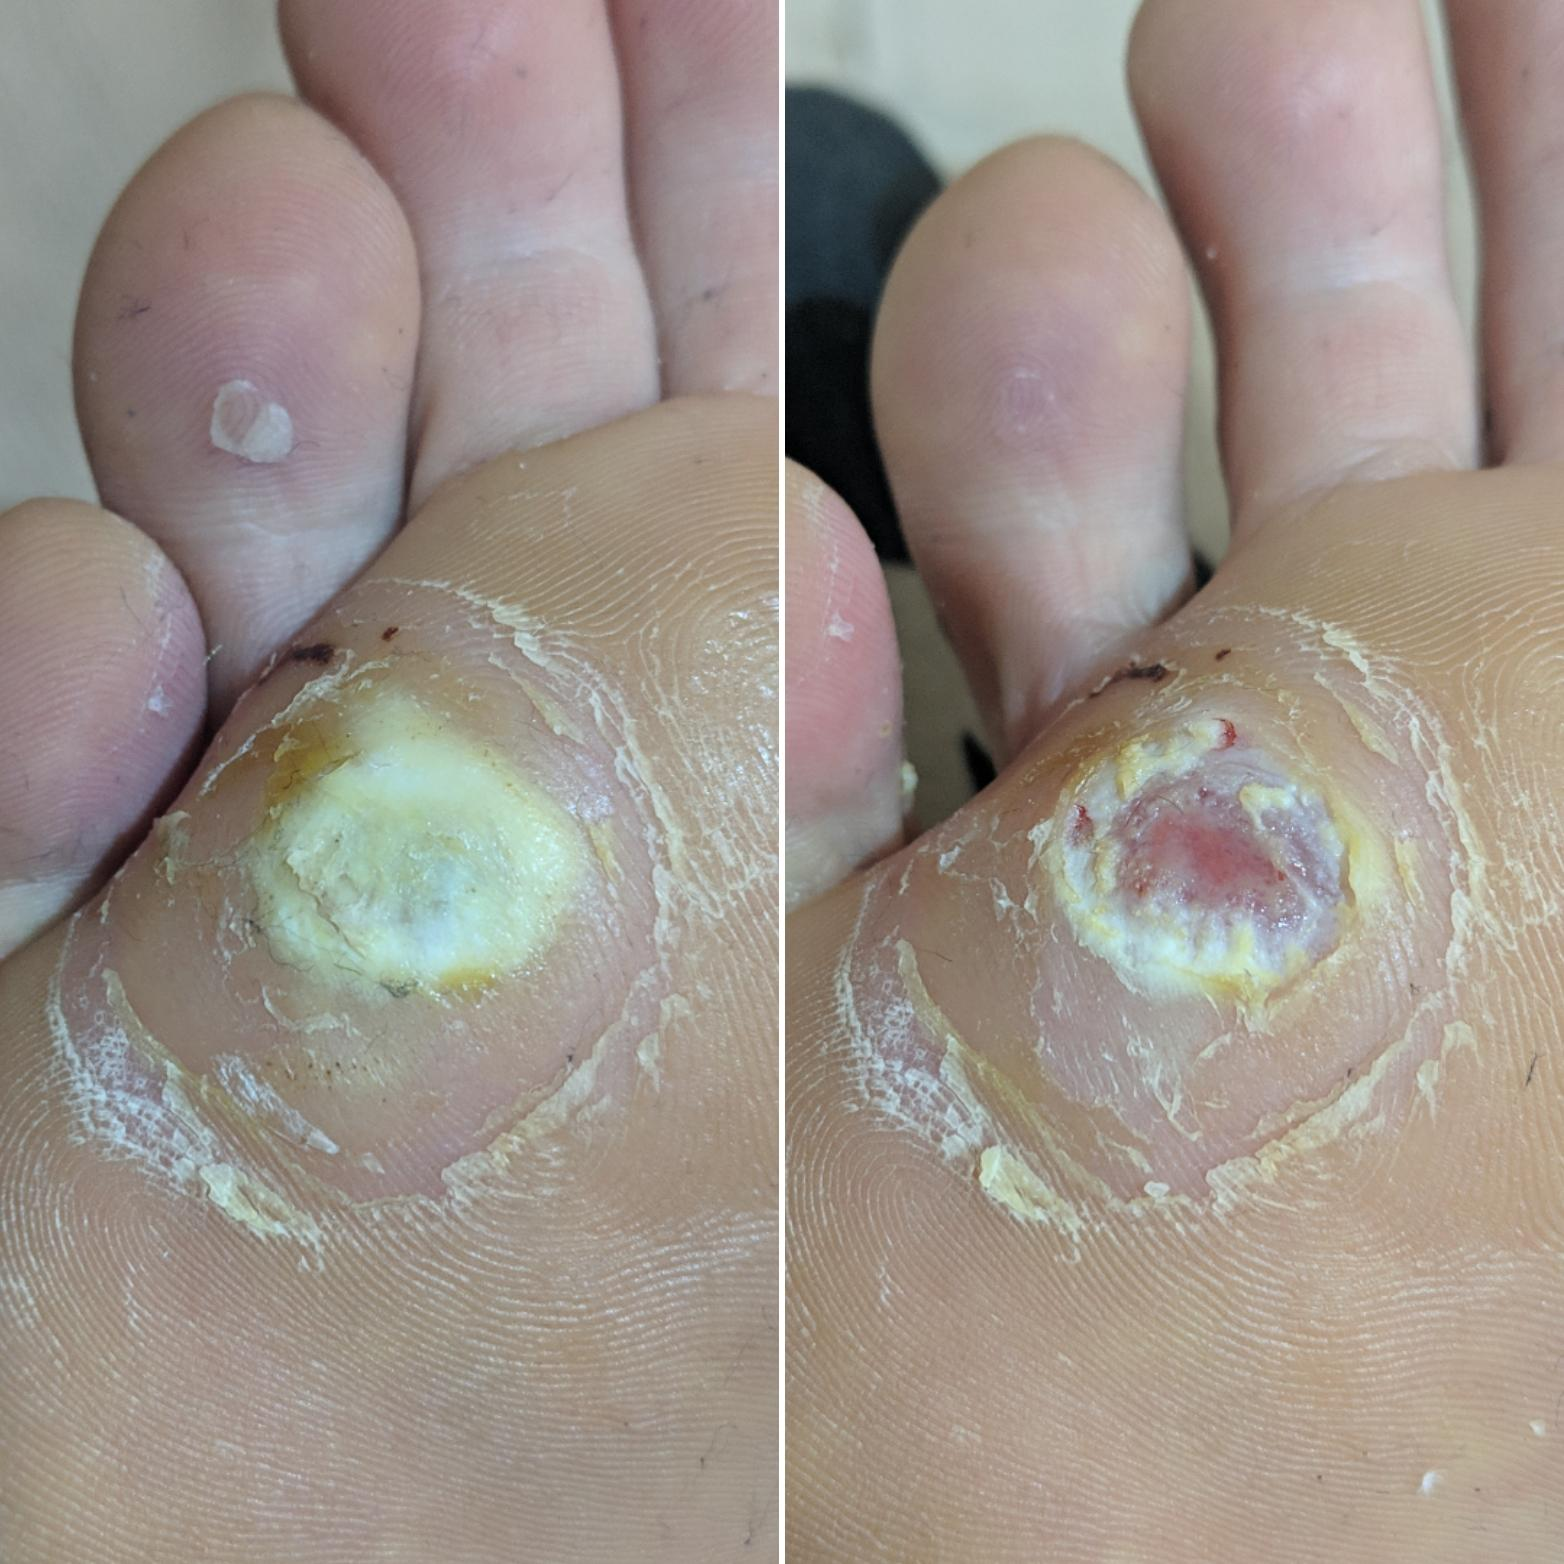 wart treatment with cantharidin